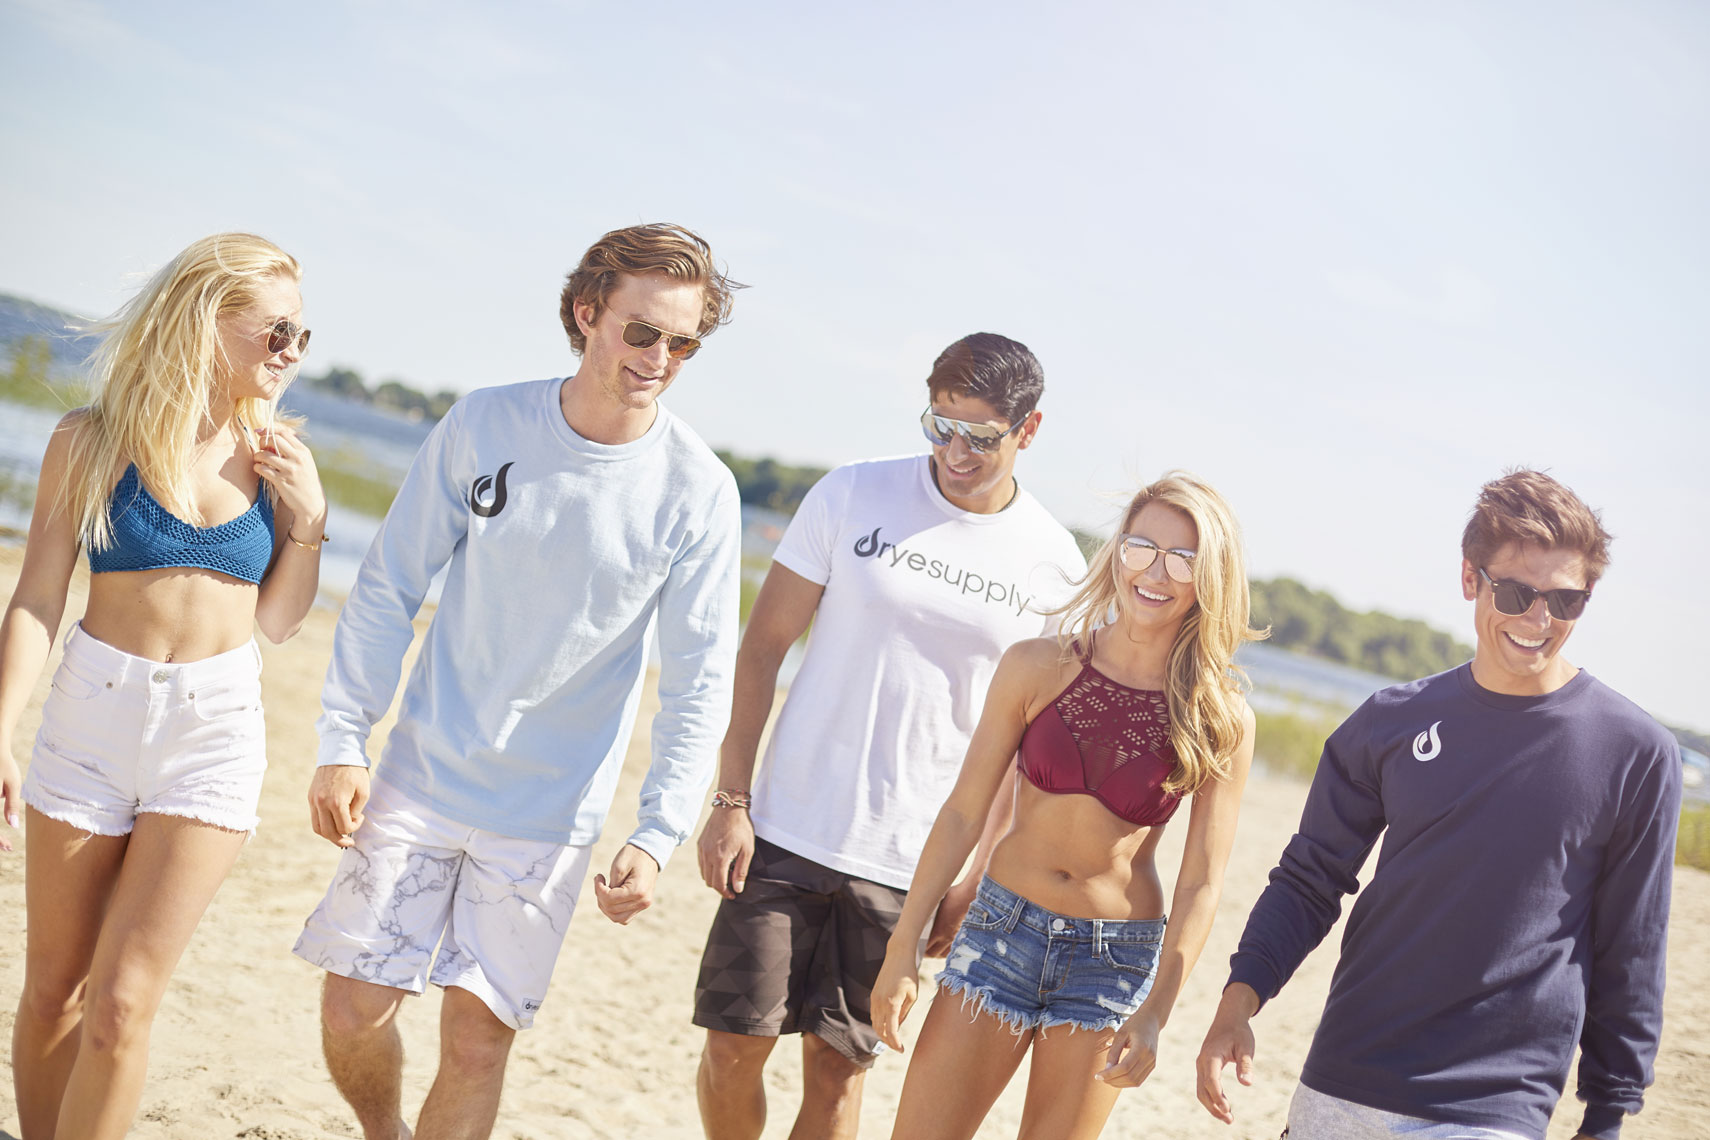 DryeSupply Shorts/Young men and women strolling/lifestyle photography